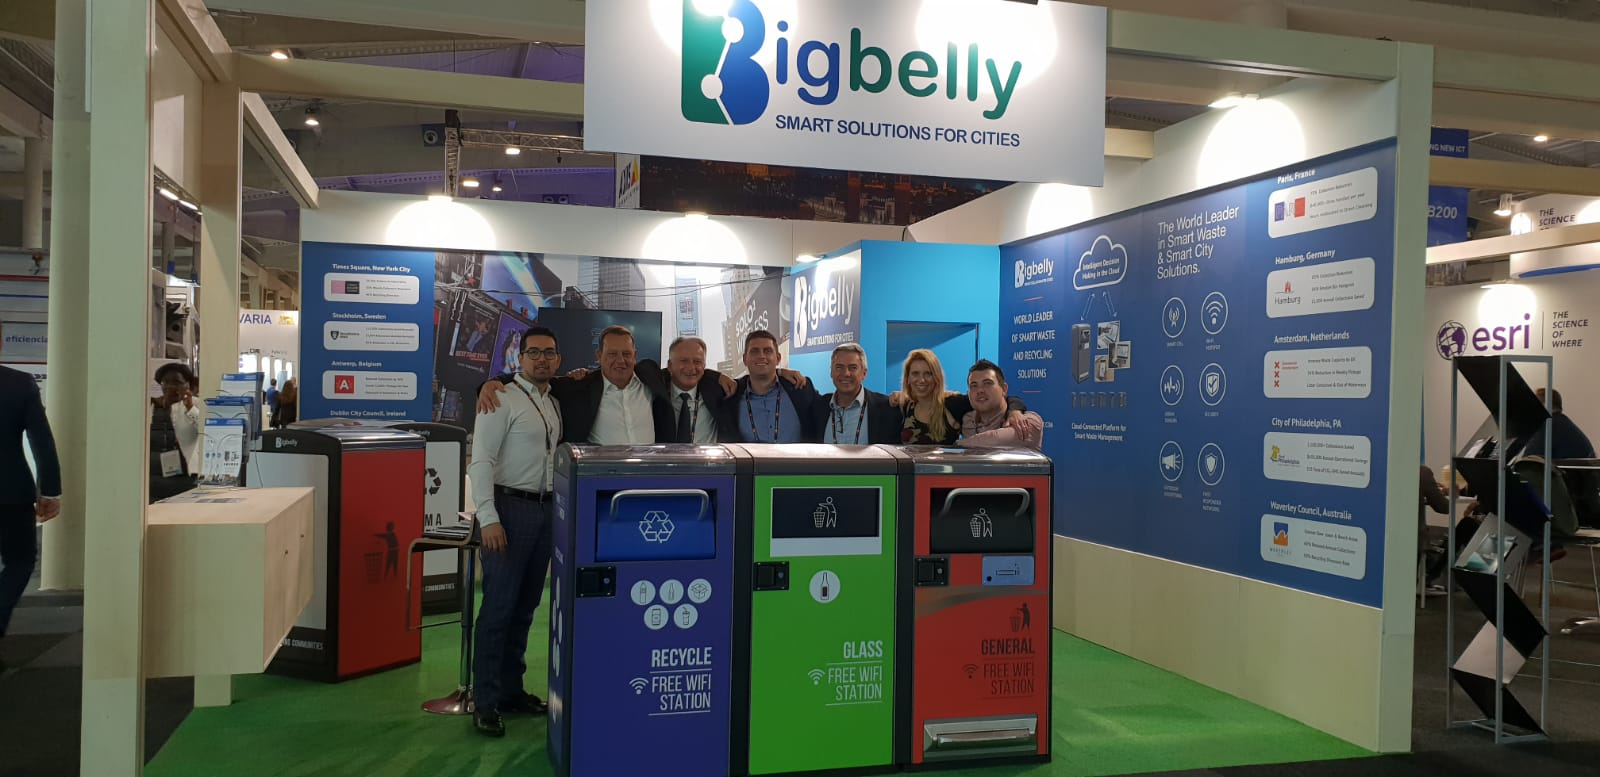 Bigbelly Blog: Beyond the Bin | Smart Cities